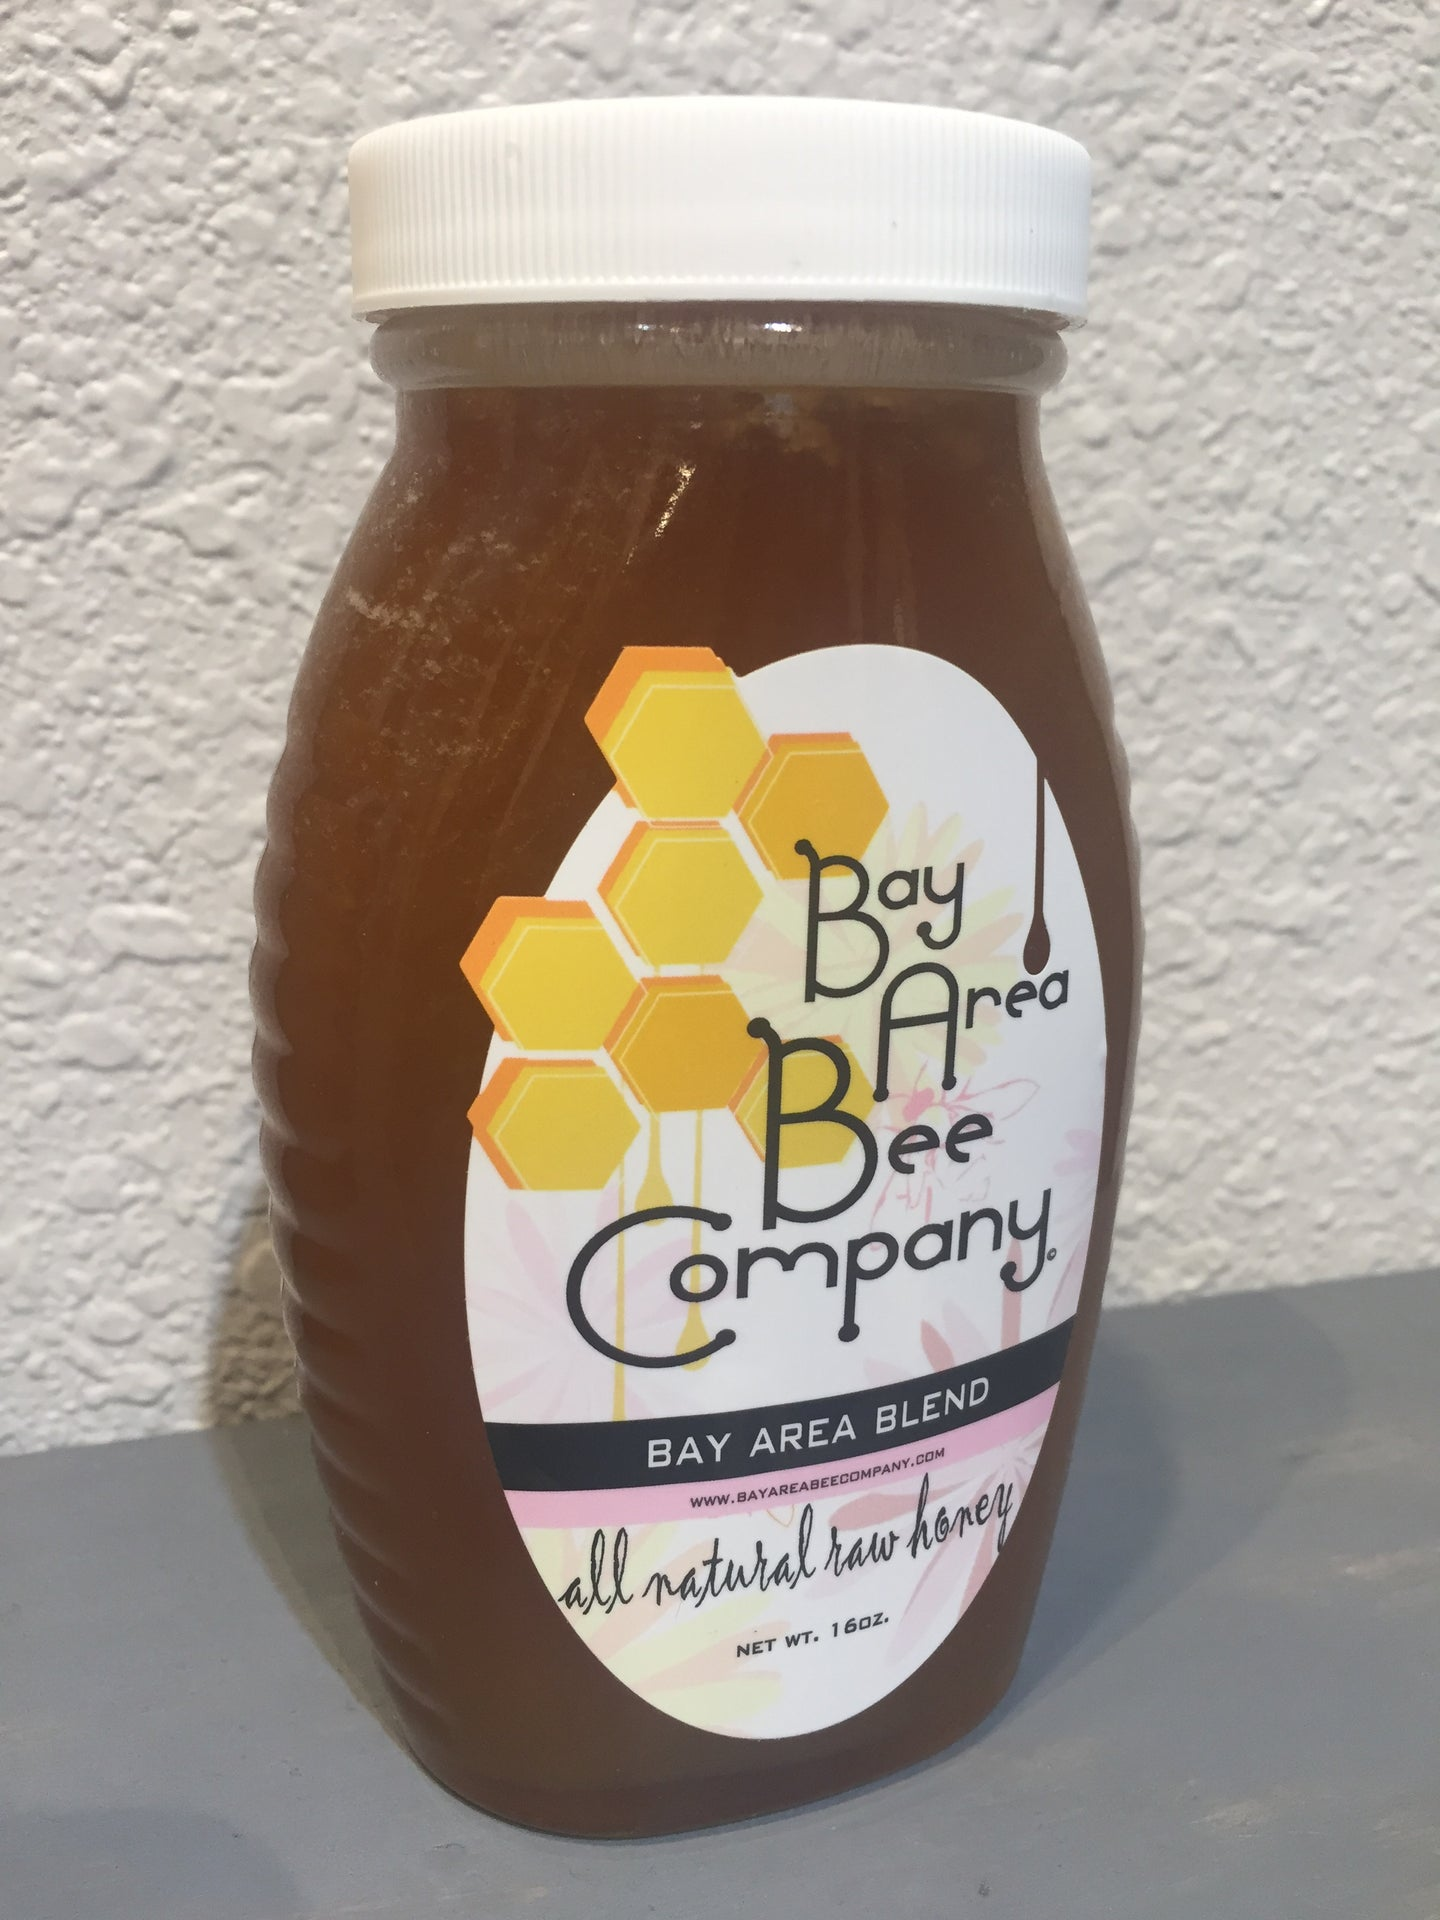 Bay Area Bee Company: Bay Area Blend Honey